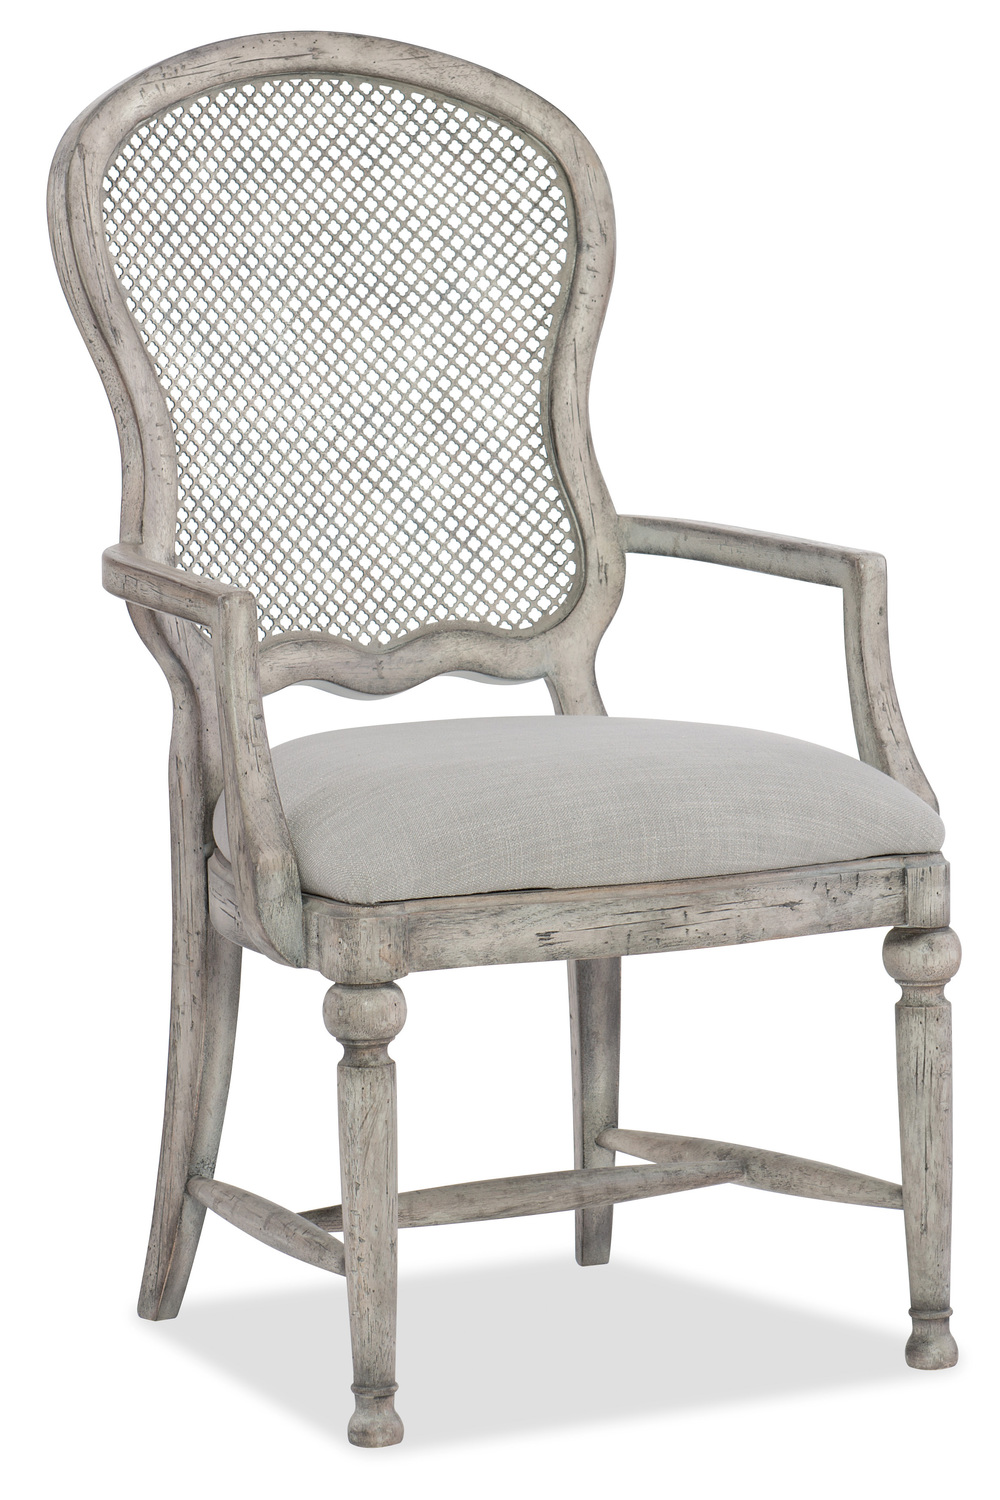 Hooker Furniture - Gaston Metal Back Arm Chair